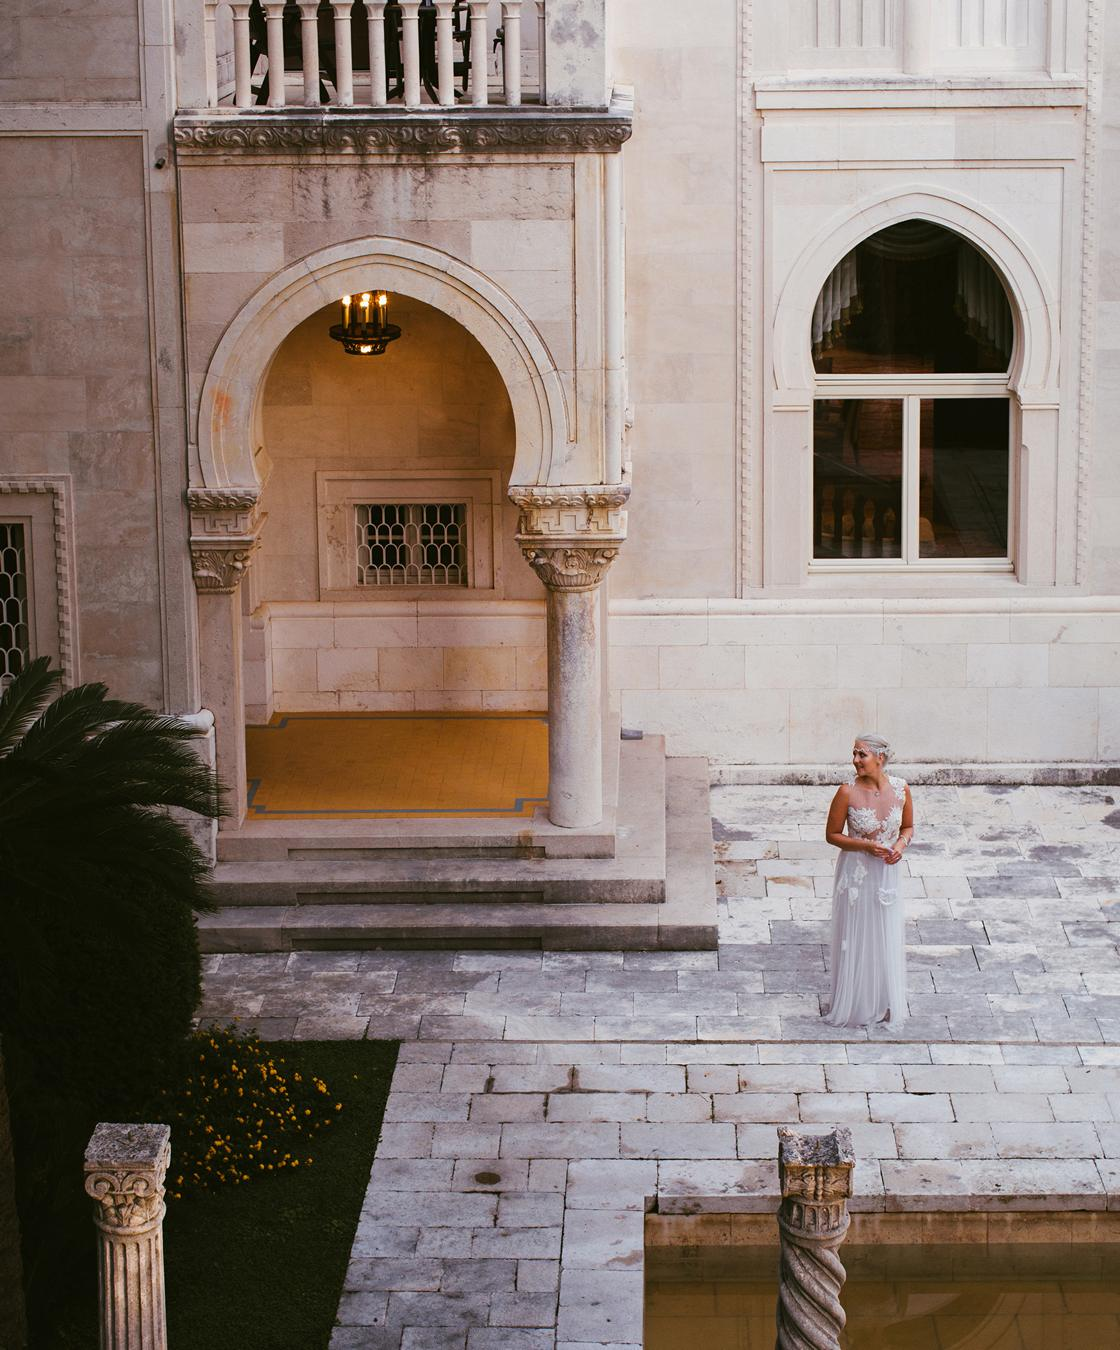 dubrovnik-wedding-photographer-croatia-destination-weddings-jenna-rich067